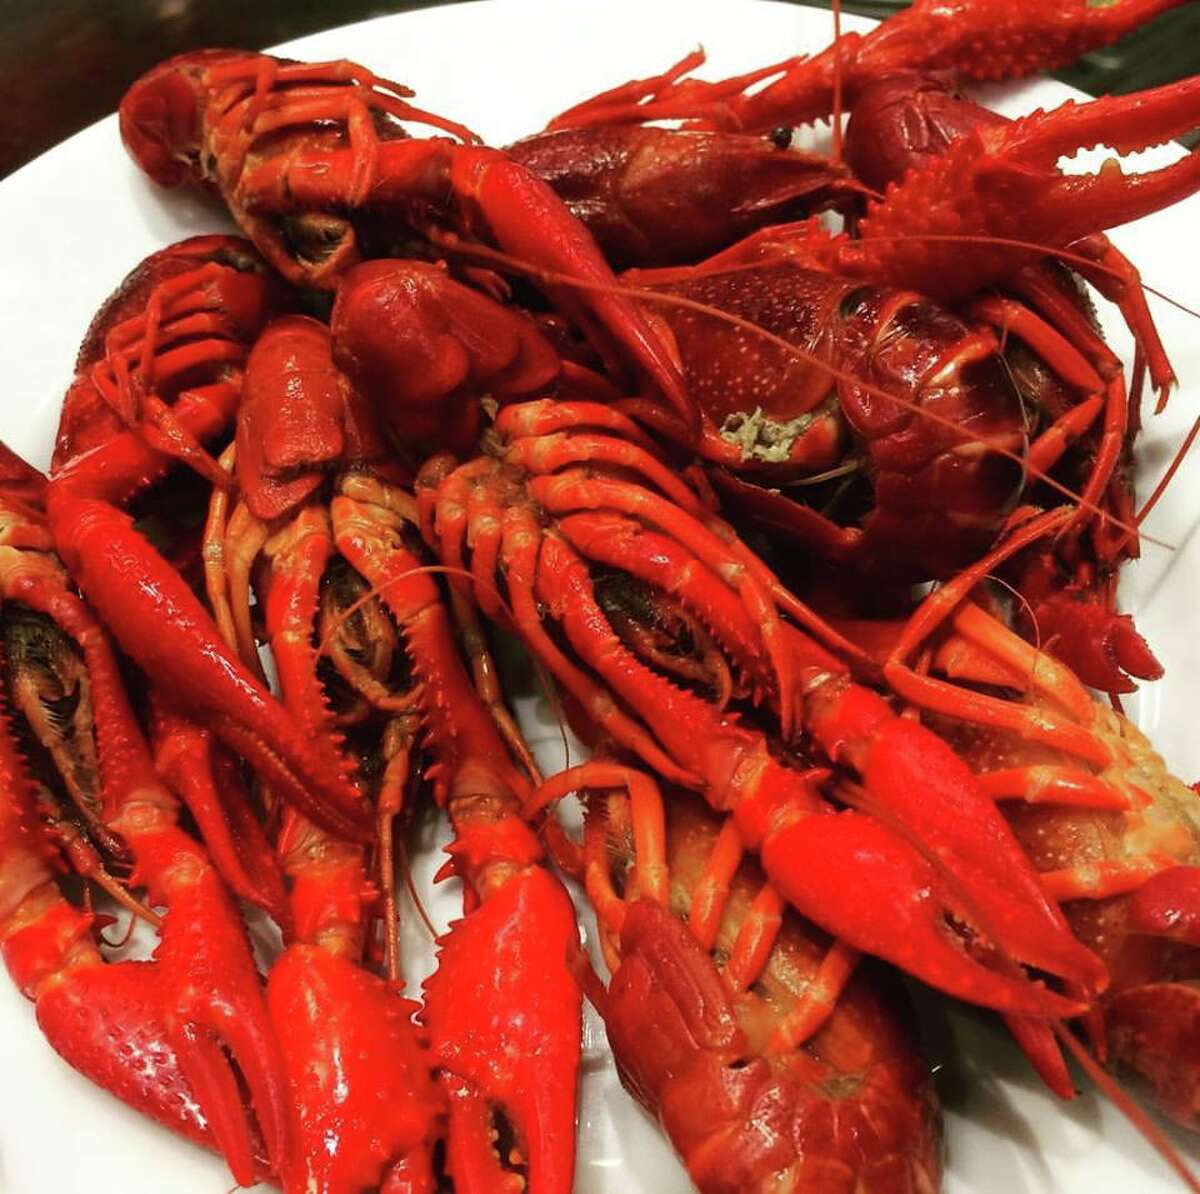 Crayfish served during an all-you-can-eat party at Ikea in New Haven in 2017.